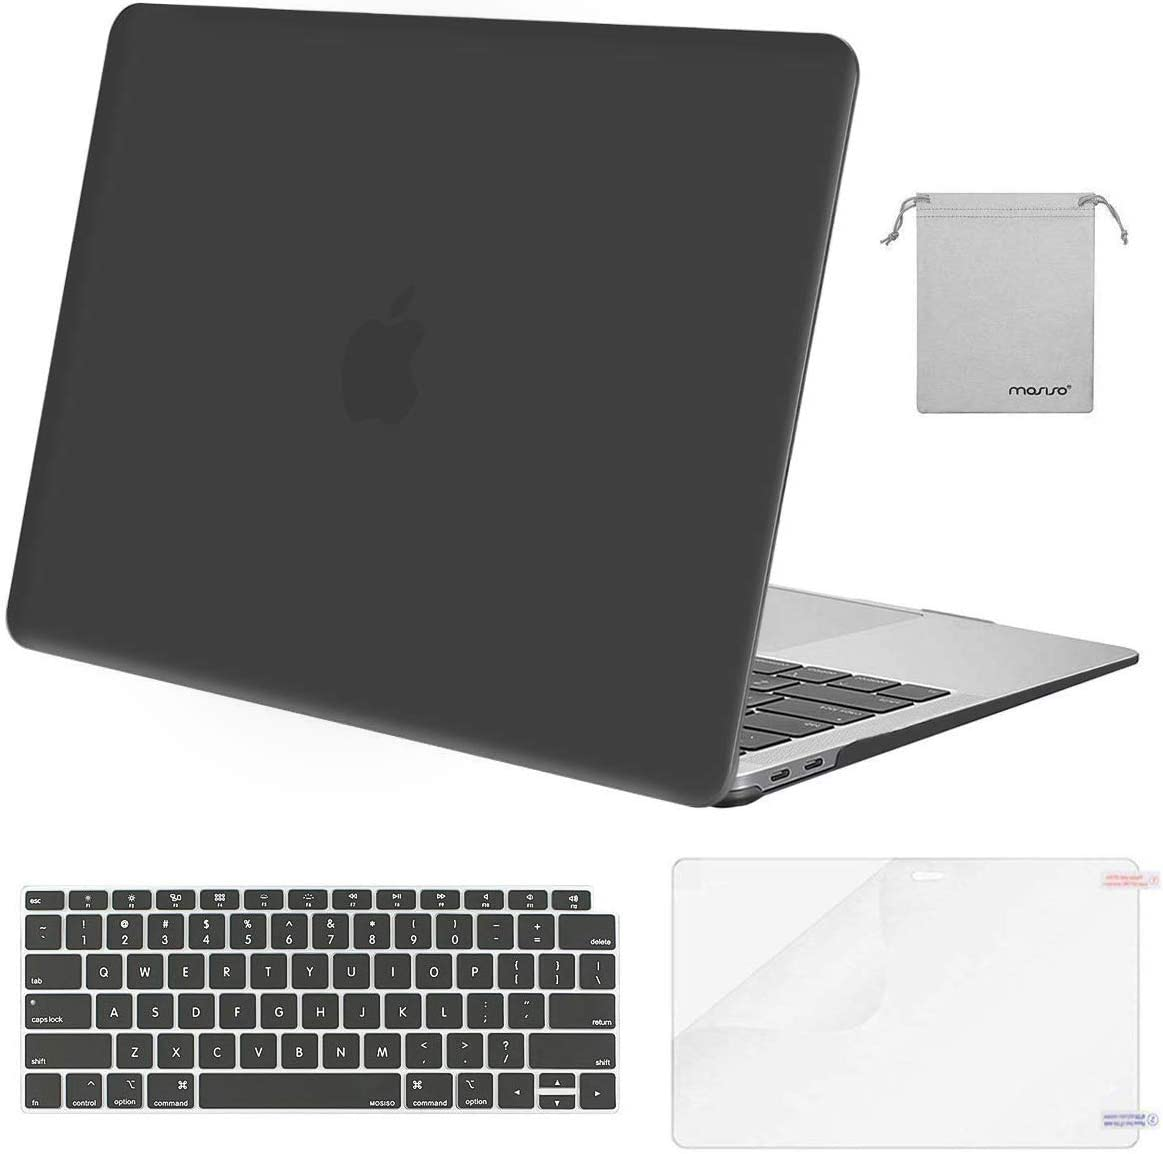 MOSISO MacBook Air 13 inch Case 2020 2019 2018 Release A2337 M1 A2179 A1932, Plastic Hard Shell&Keyboard Cover&Screen Protector&Storage Bag Compatible with MacBook Air 13 inch Retina, Space Gray